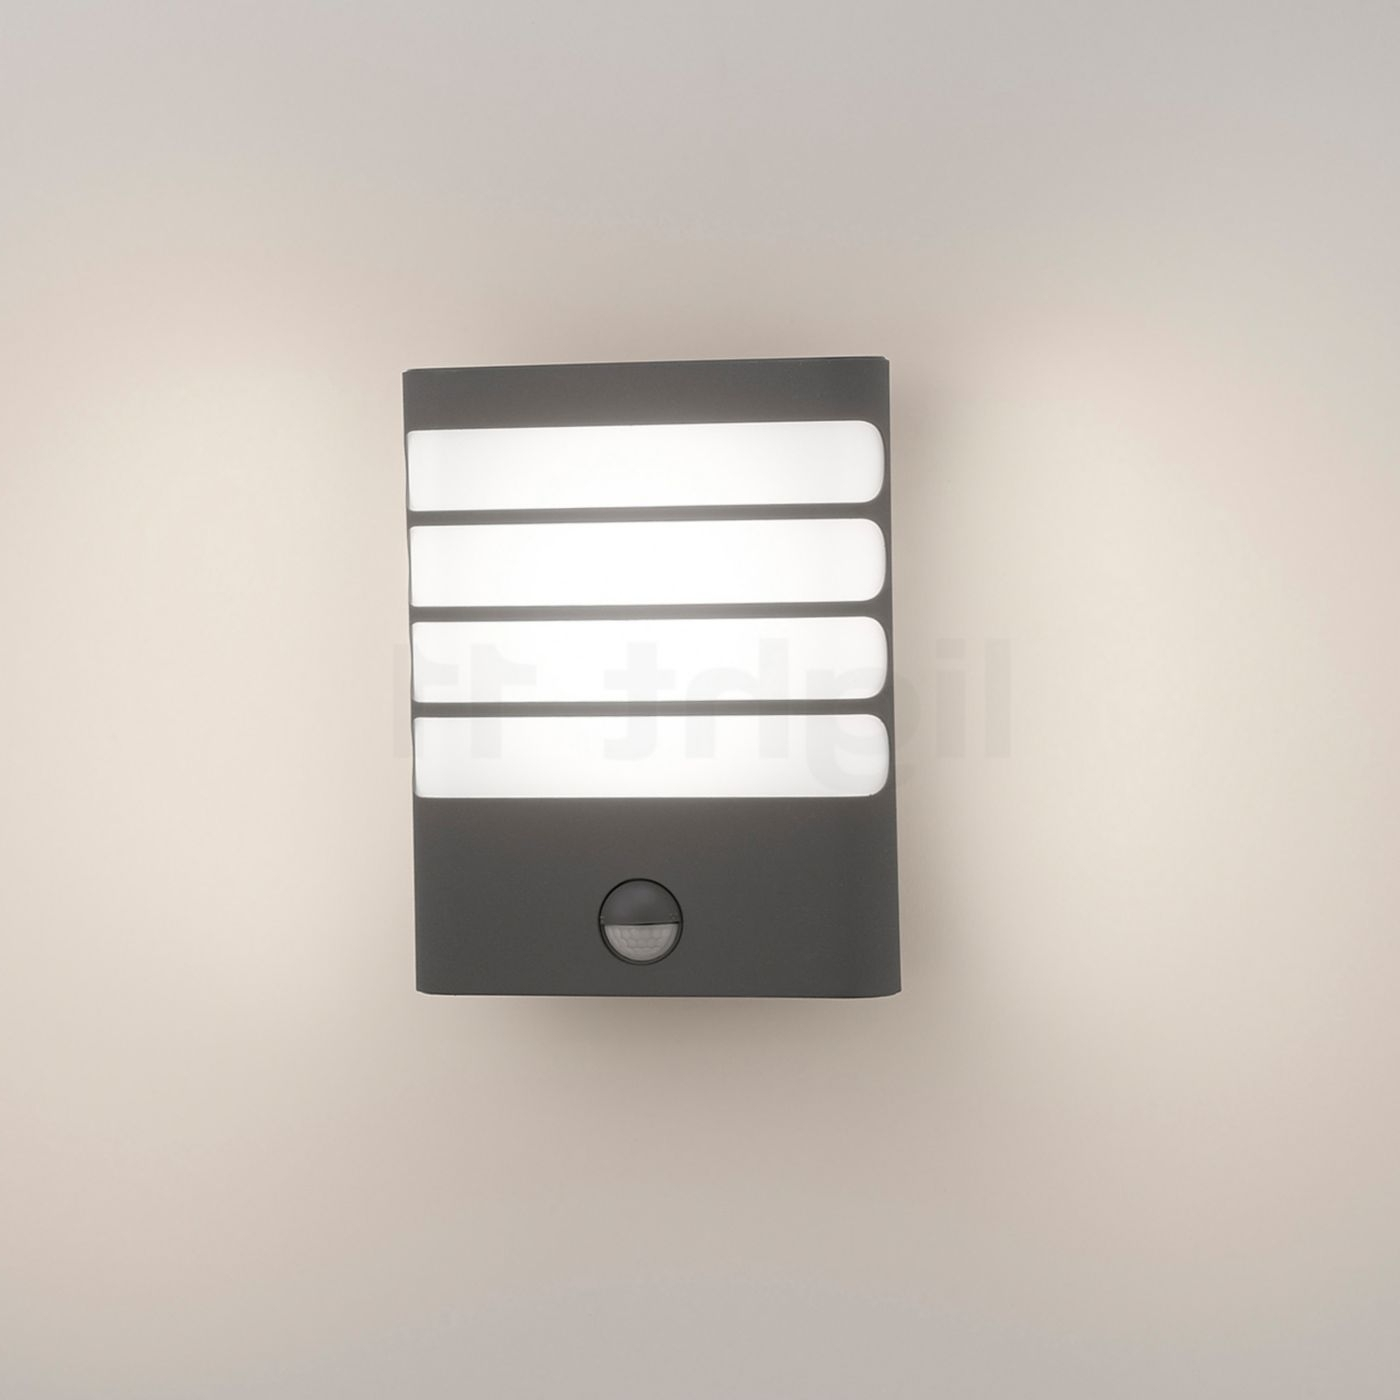 Favorite Led Outdoor Raccoon Wall Lights With Motion Detector Inside Philips Mygarden Raccoon 17274 Wall Light With Motion Detector Led (View 3 of 20)